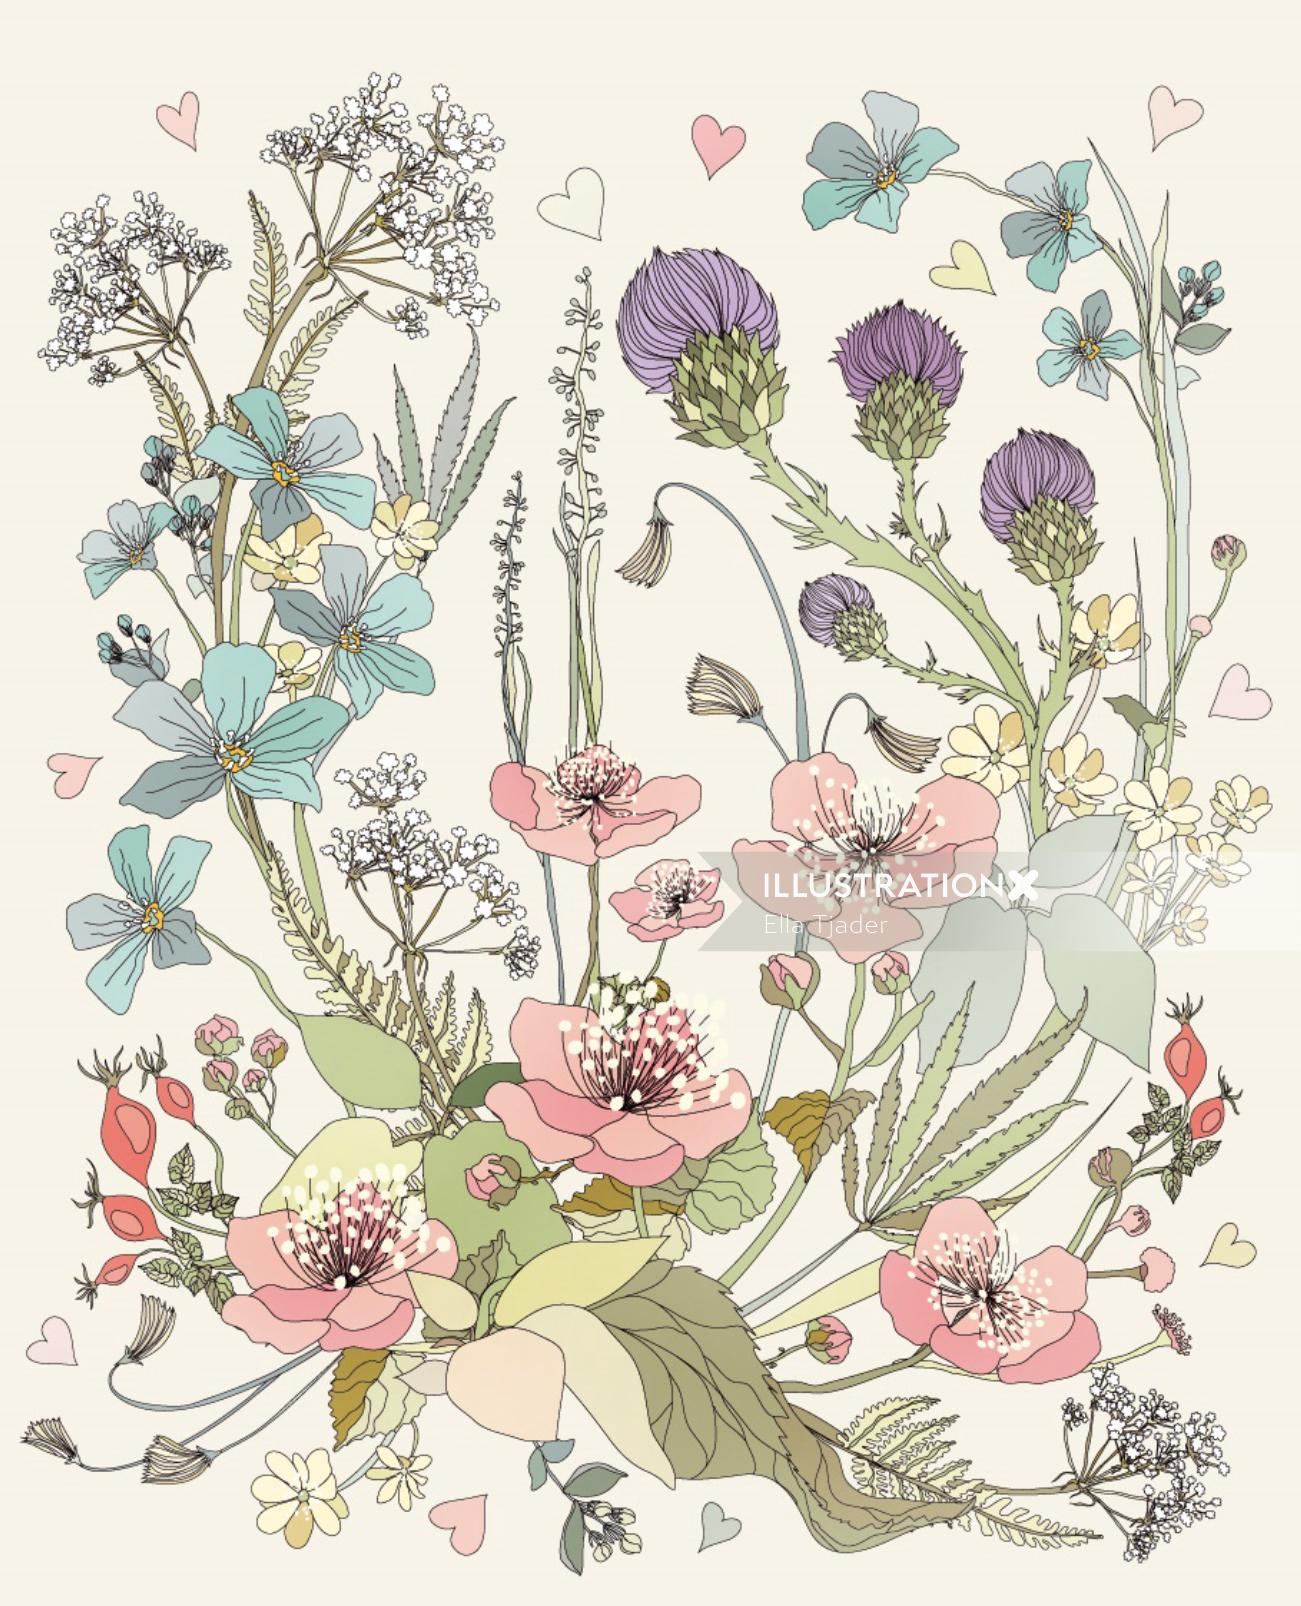 Illustration of Botanical plants